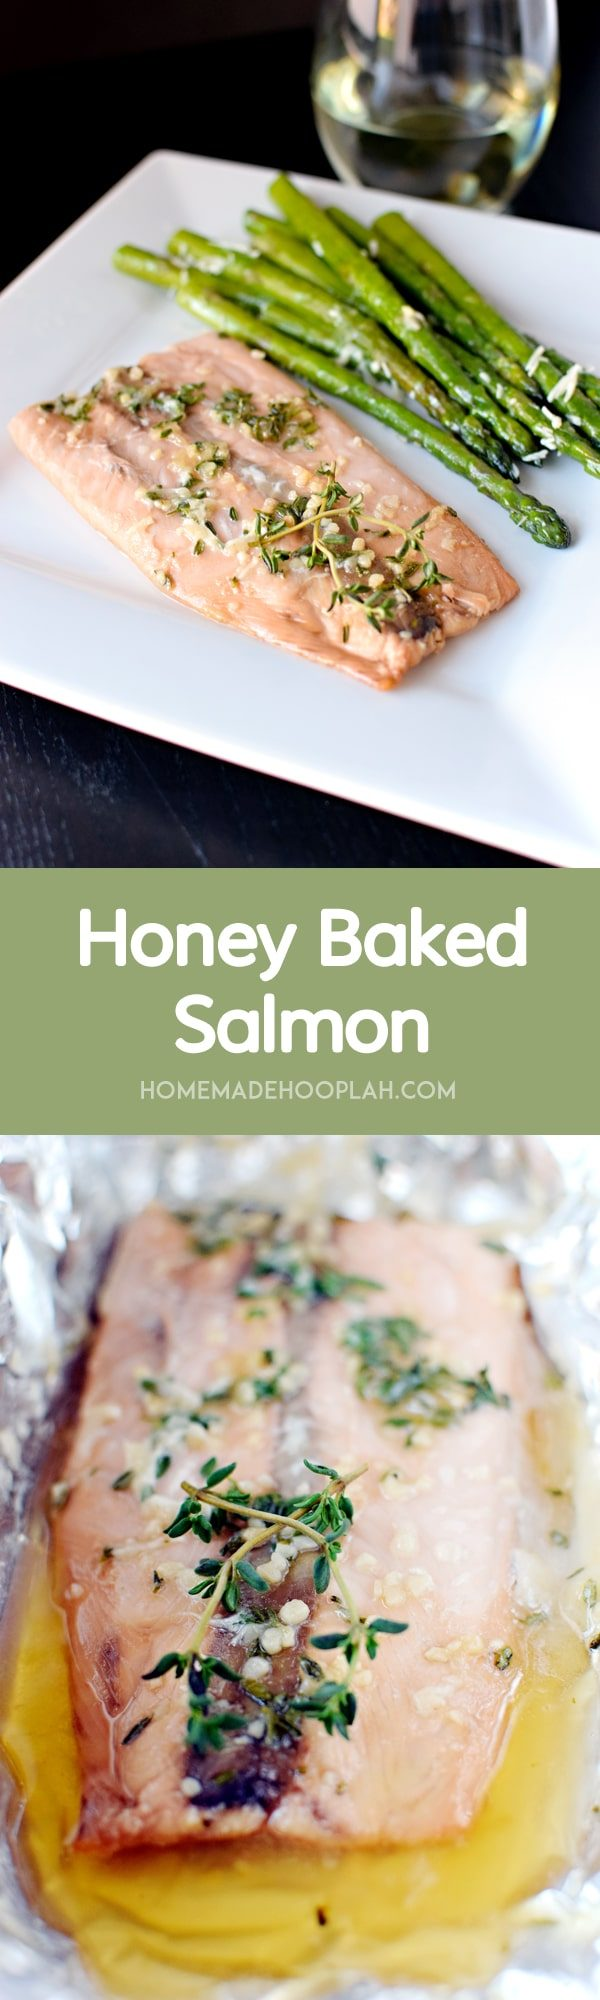 Honey Baked Salmon! Sweet, flaky salmon baked in foil. | HomemadeHooplah.com